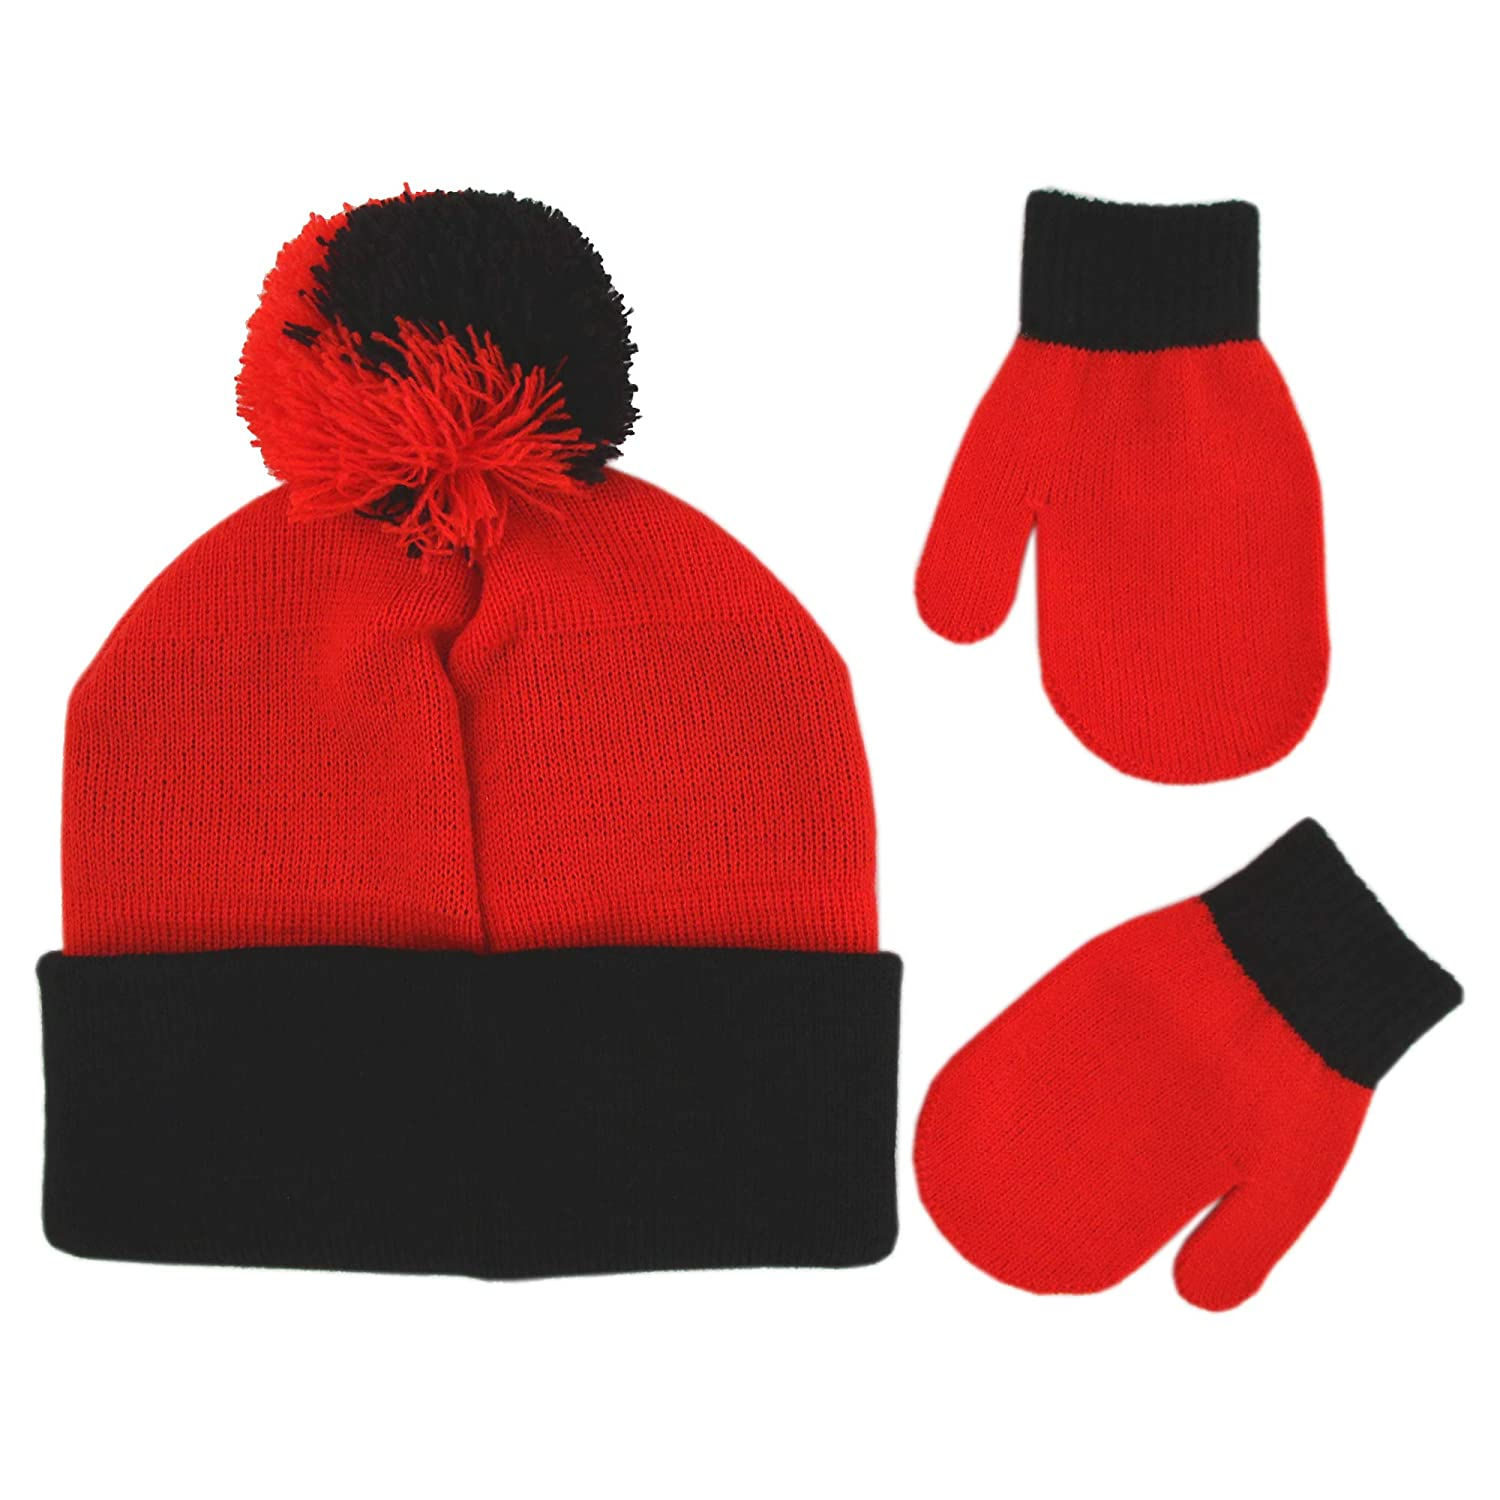 136cbbf46e3 Disney Boys Toddler Cars Lightning McQueen Beanie Hat and Mittens Winter  Set